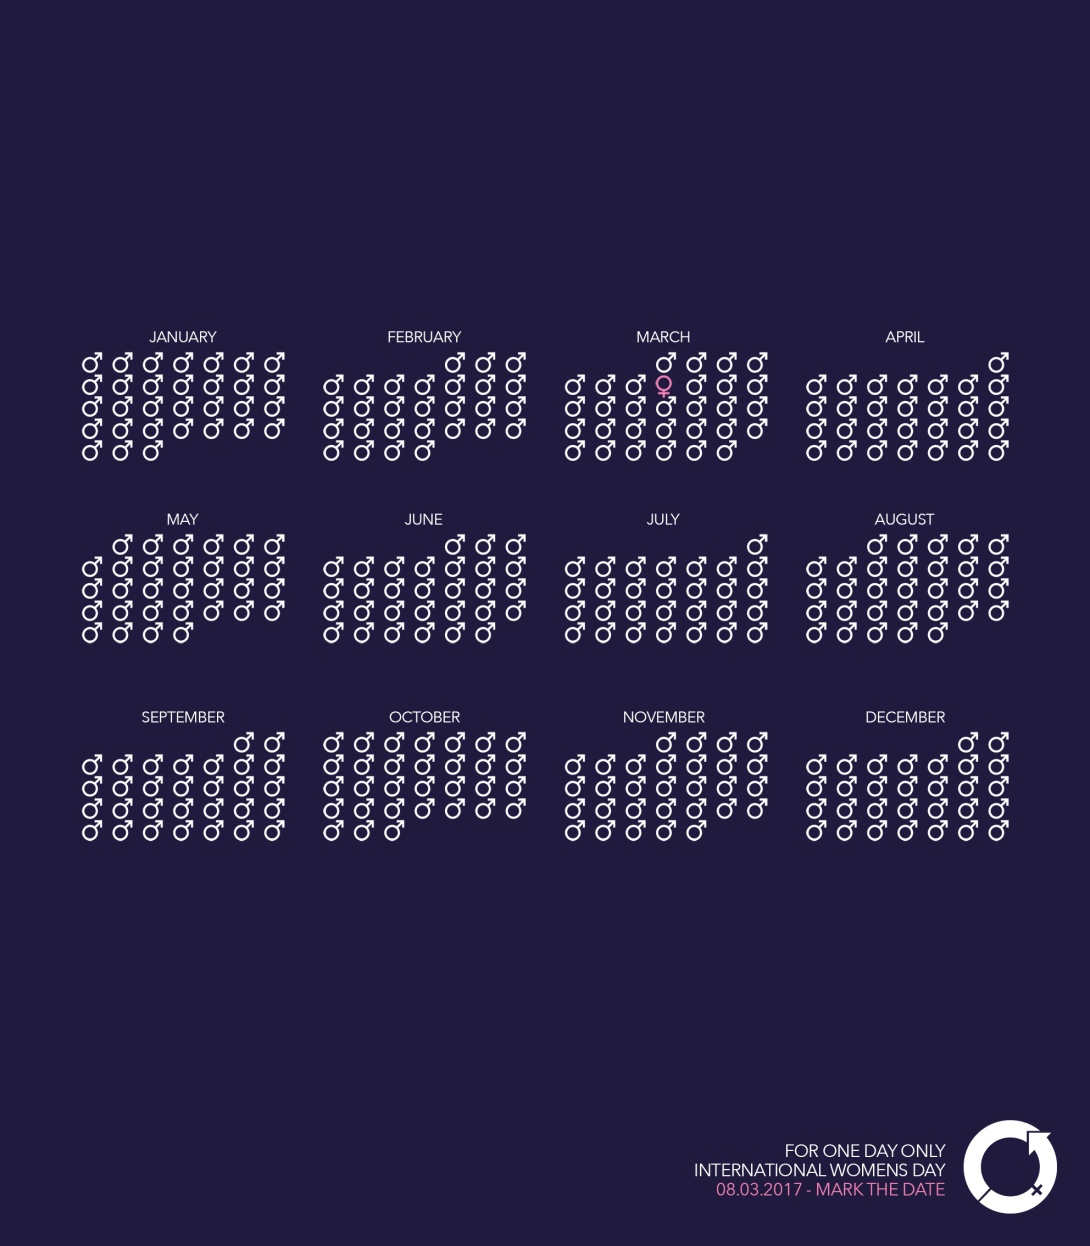 ad idea for international women's day - calendar